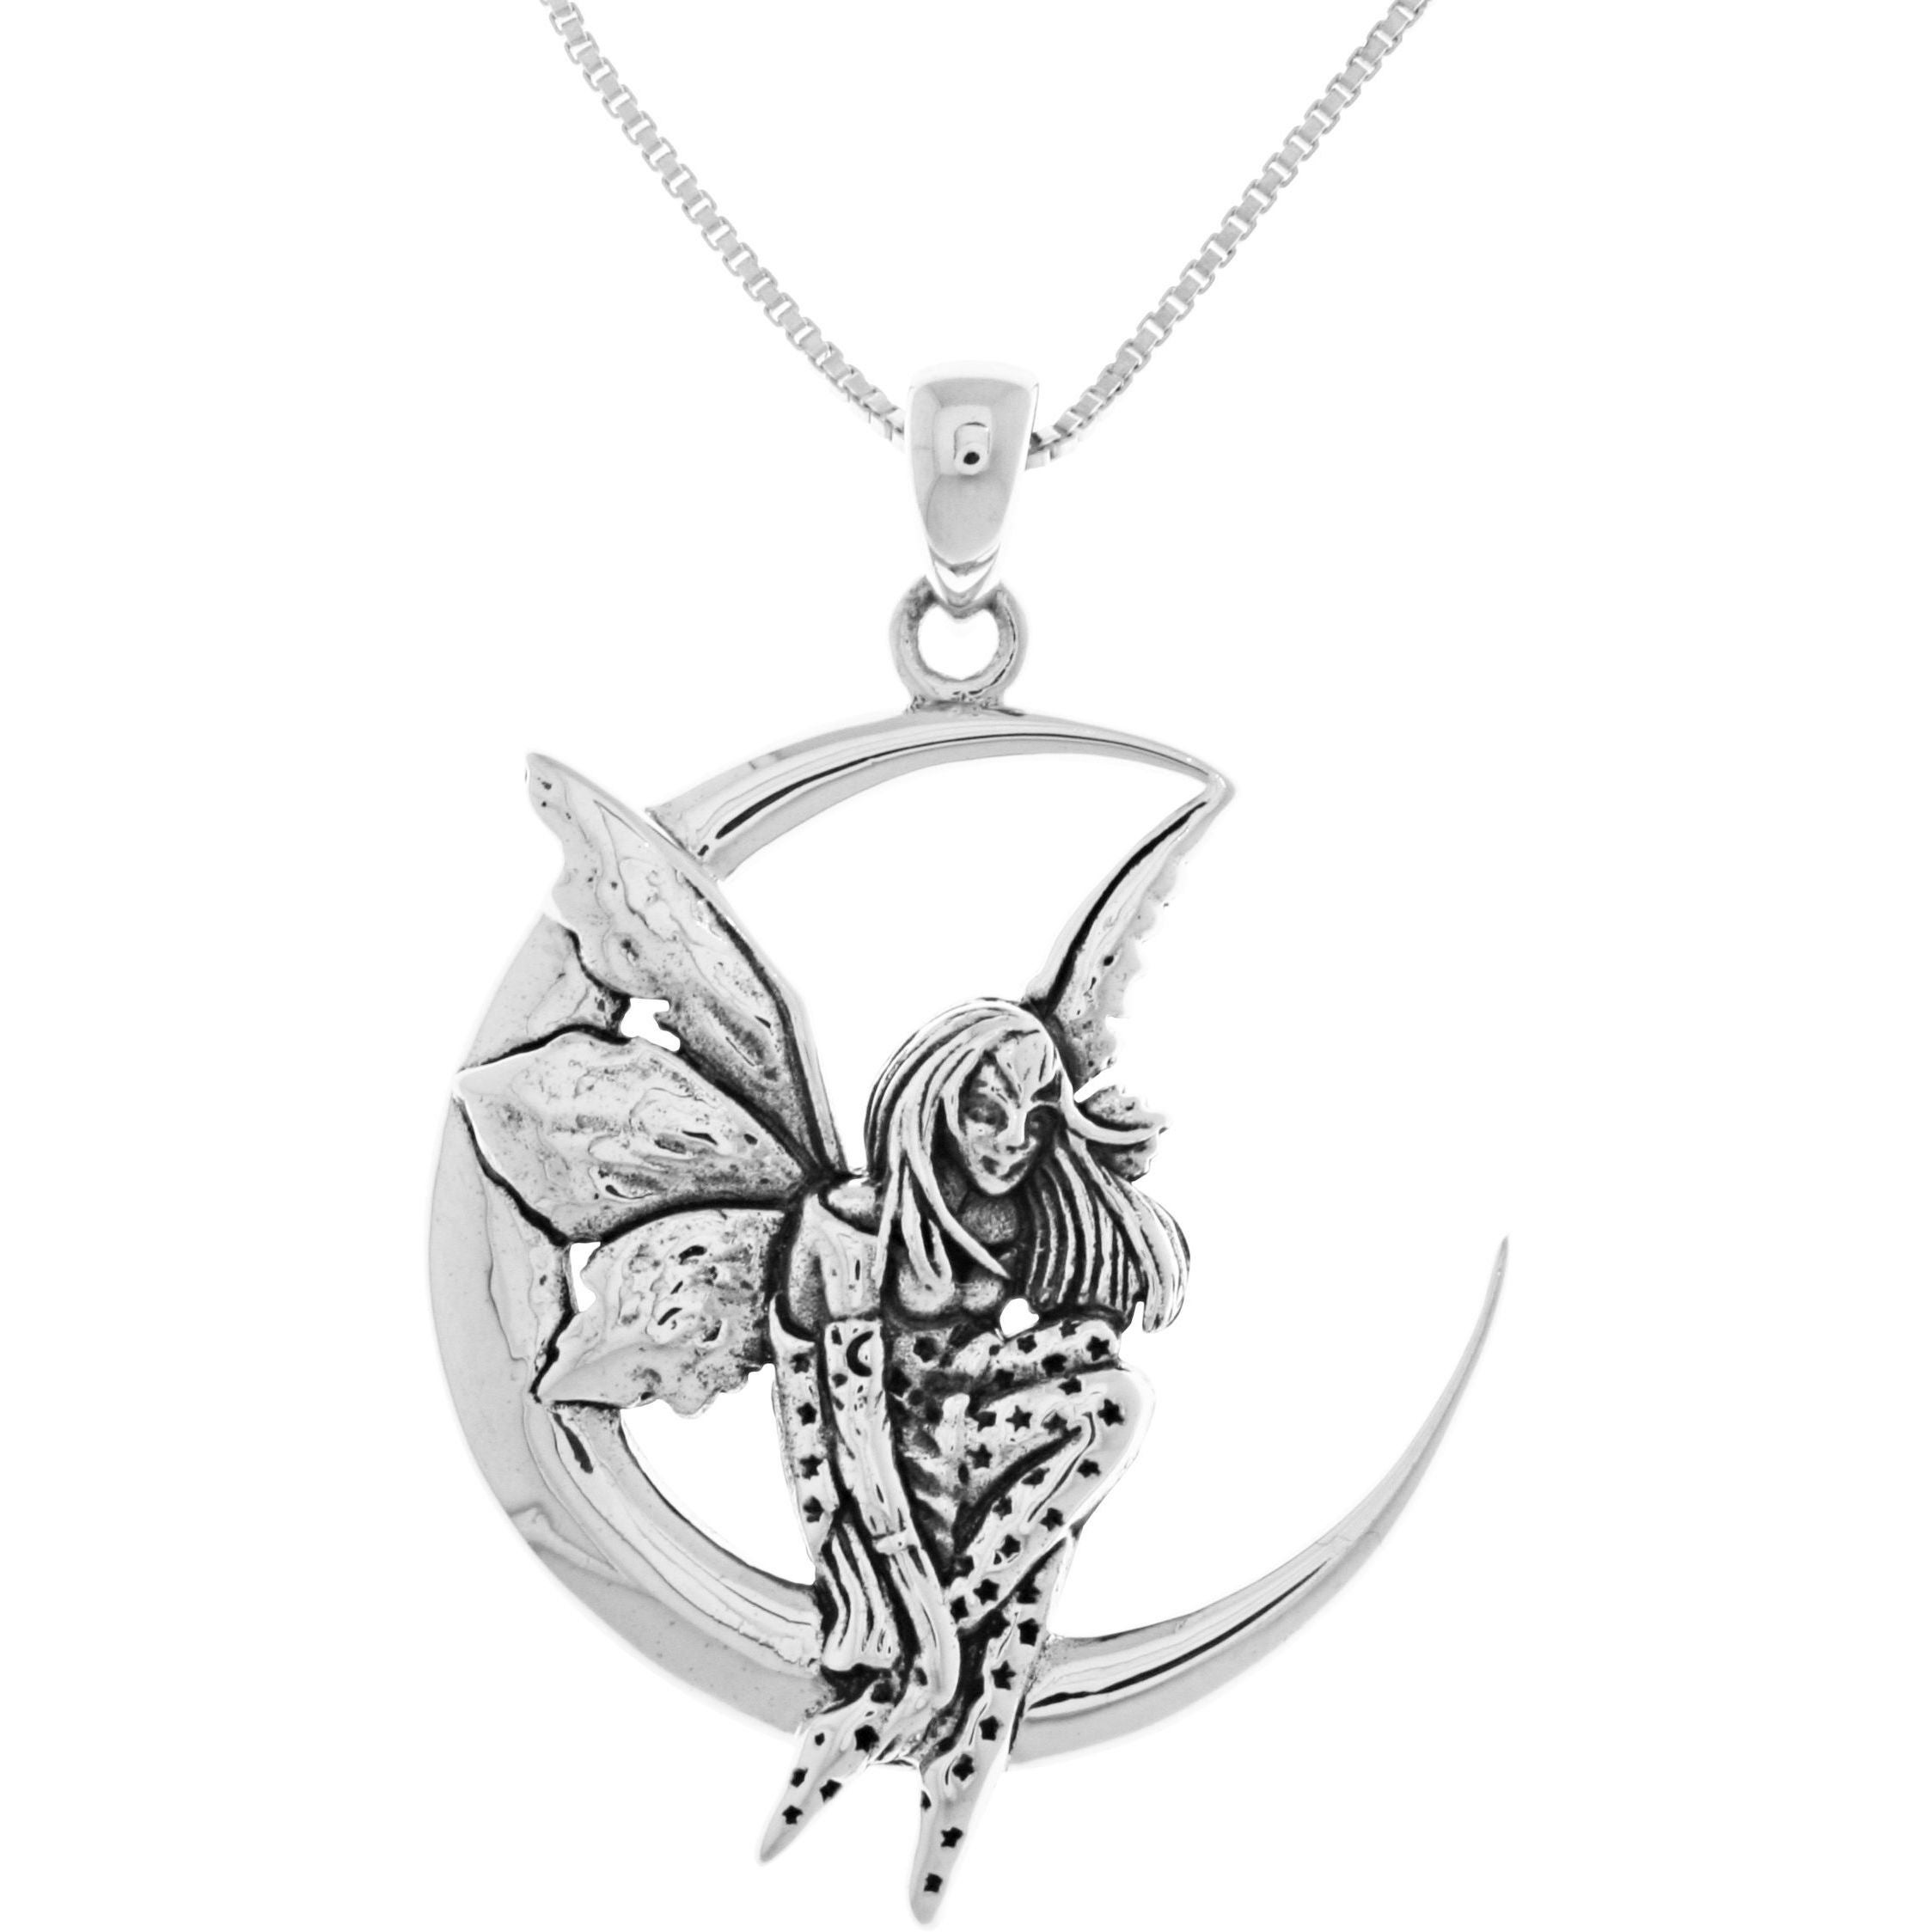 boy london joy jewellers necklace fairy fine products large everley silver